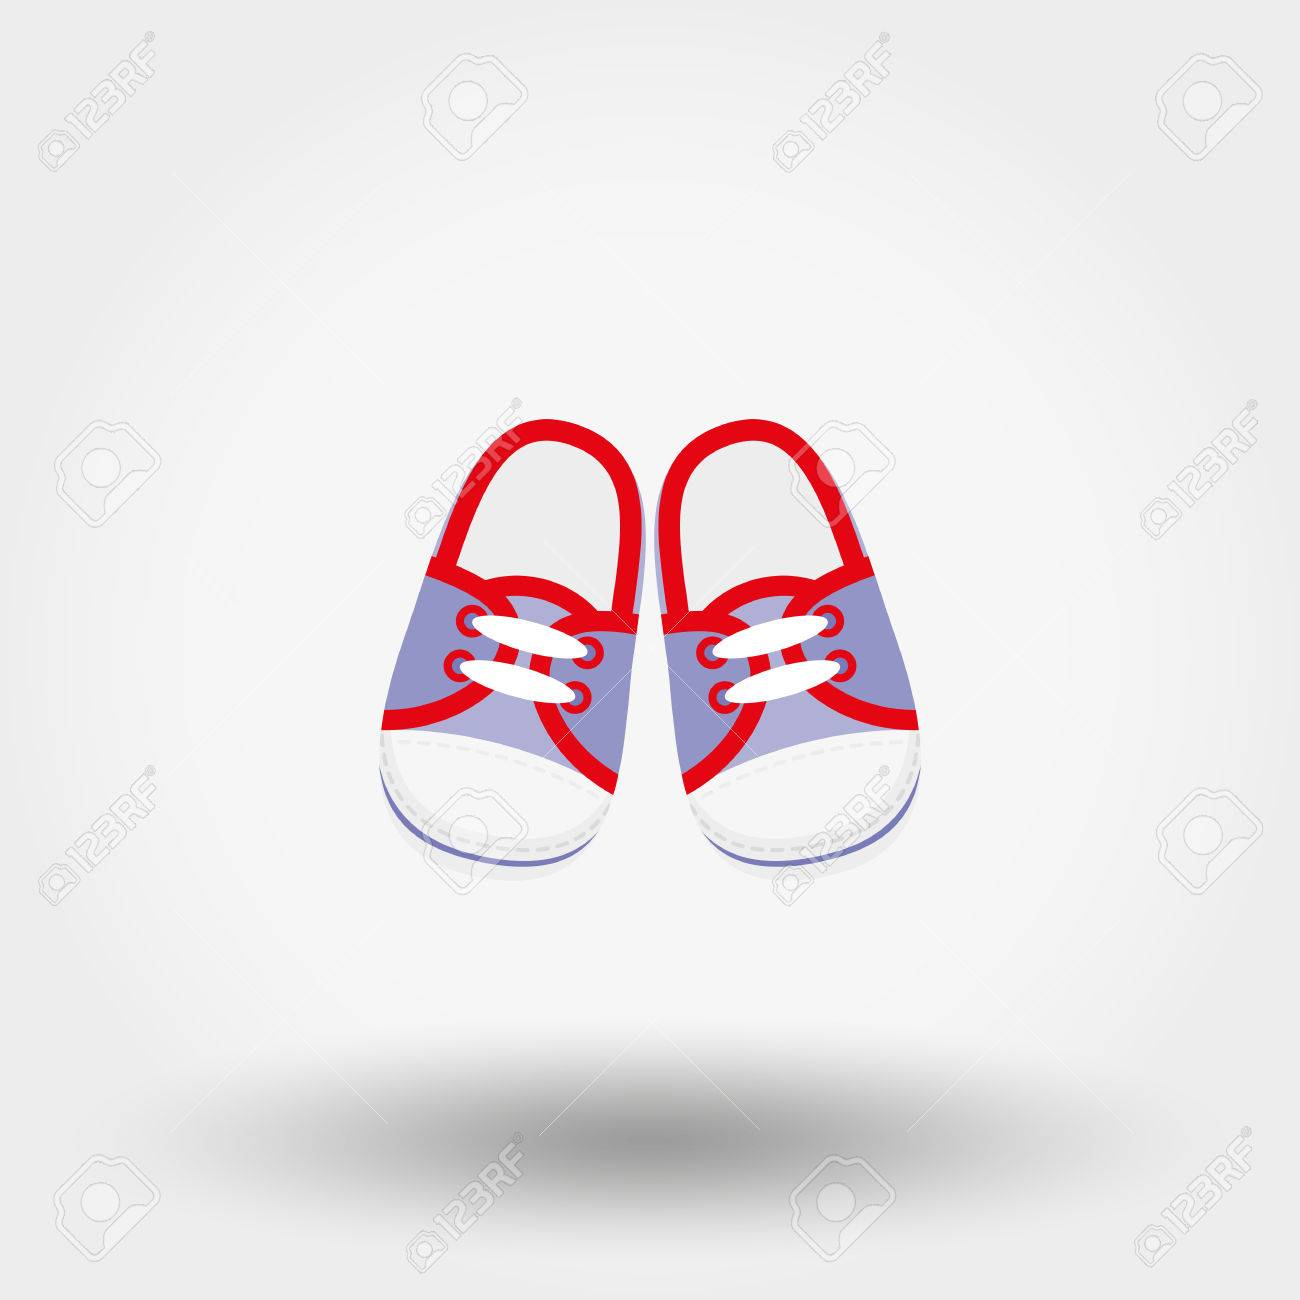 Booties Sneakers Baby Shoes Icon For Web And Mobile Application Royalty Free Cliparts Vectors And Stock Illustration Image 68360915